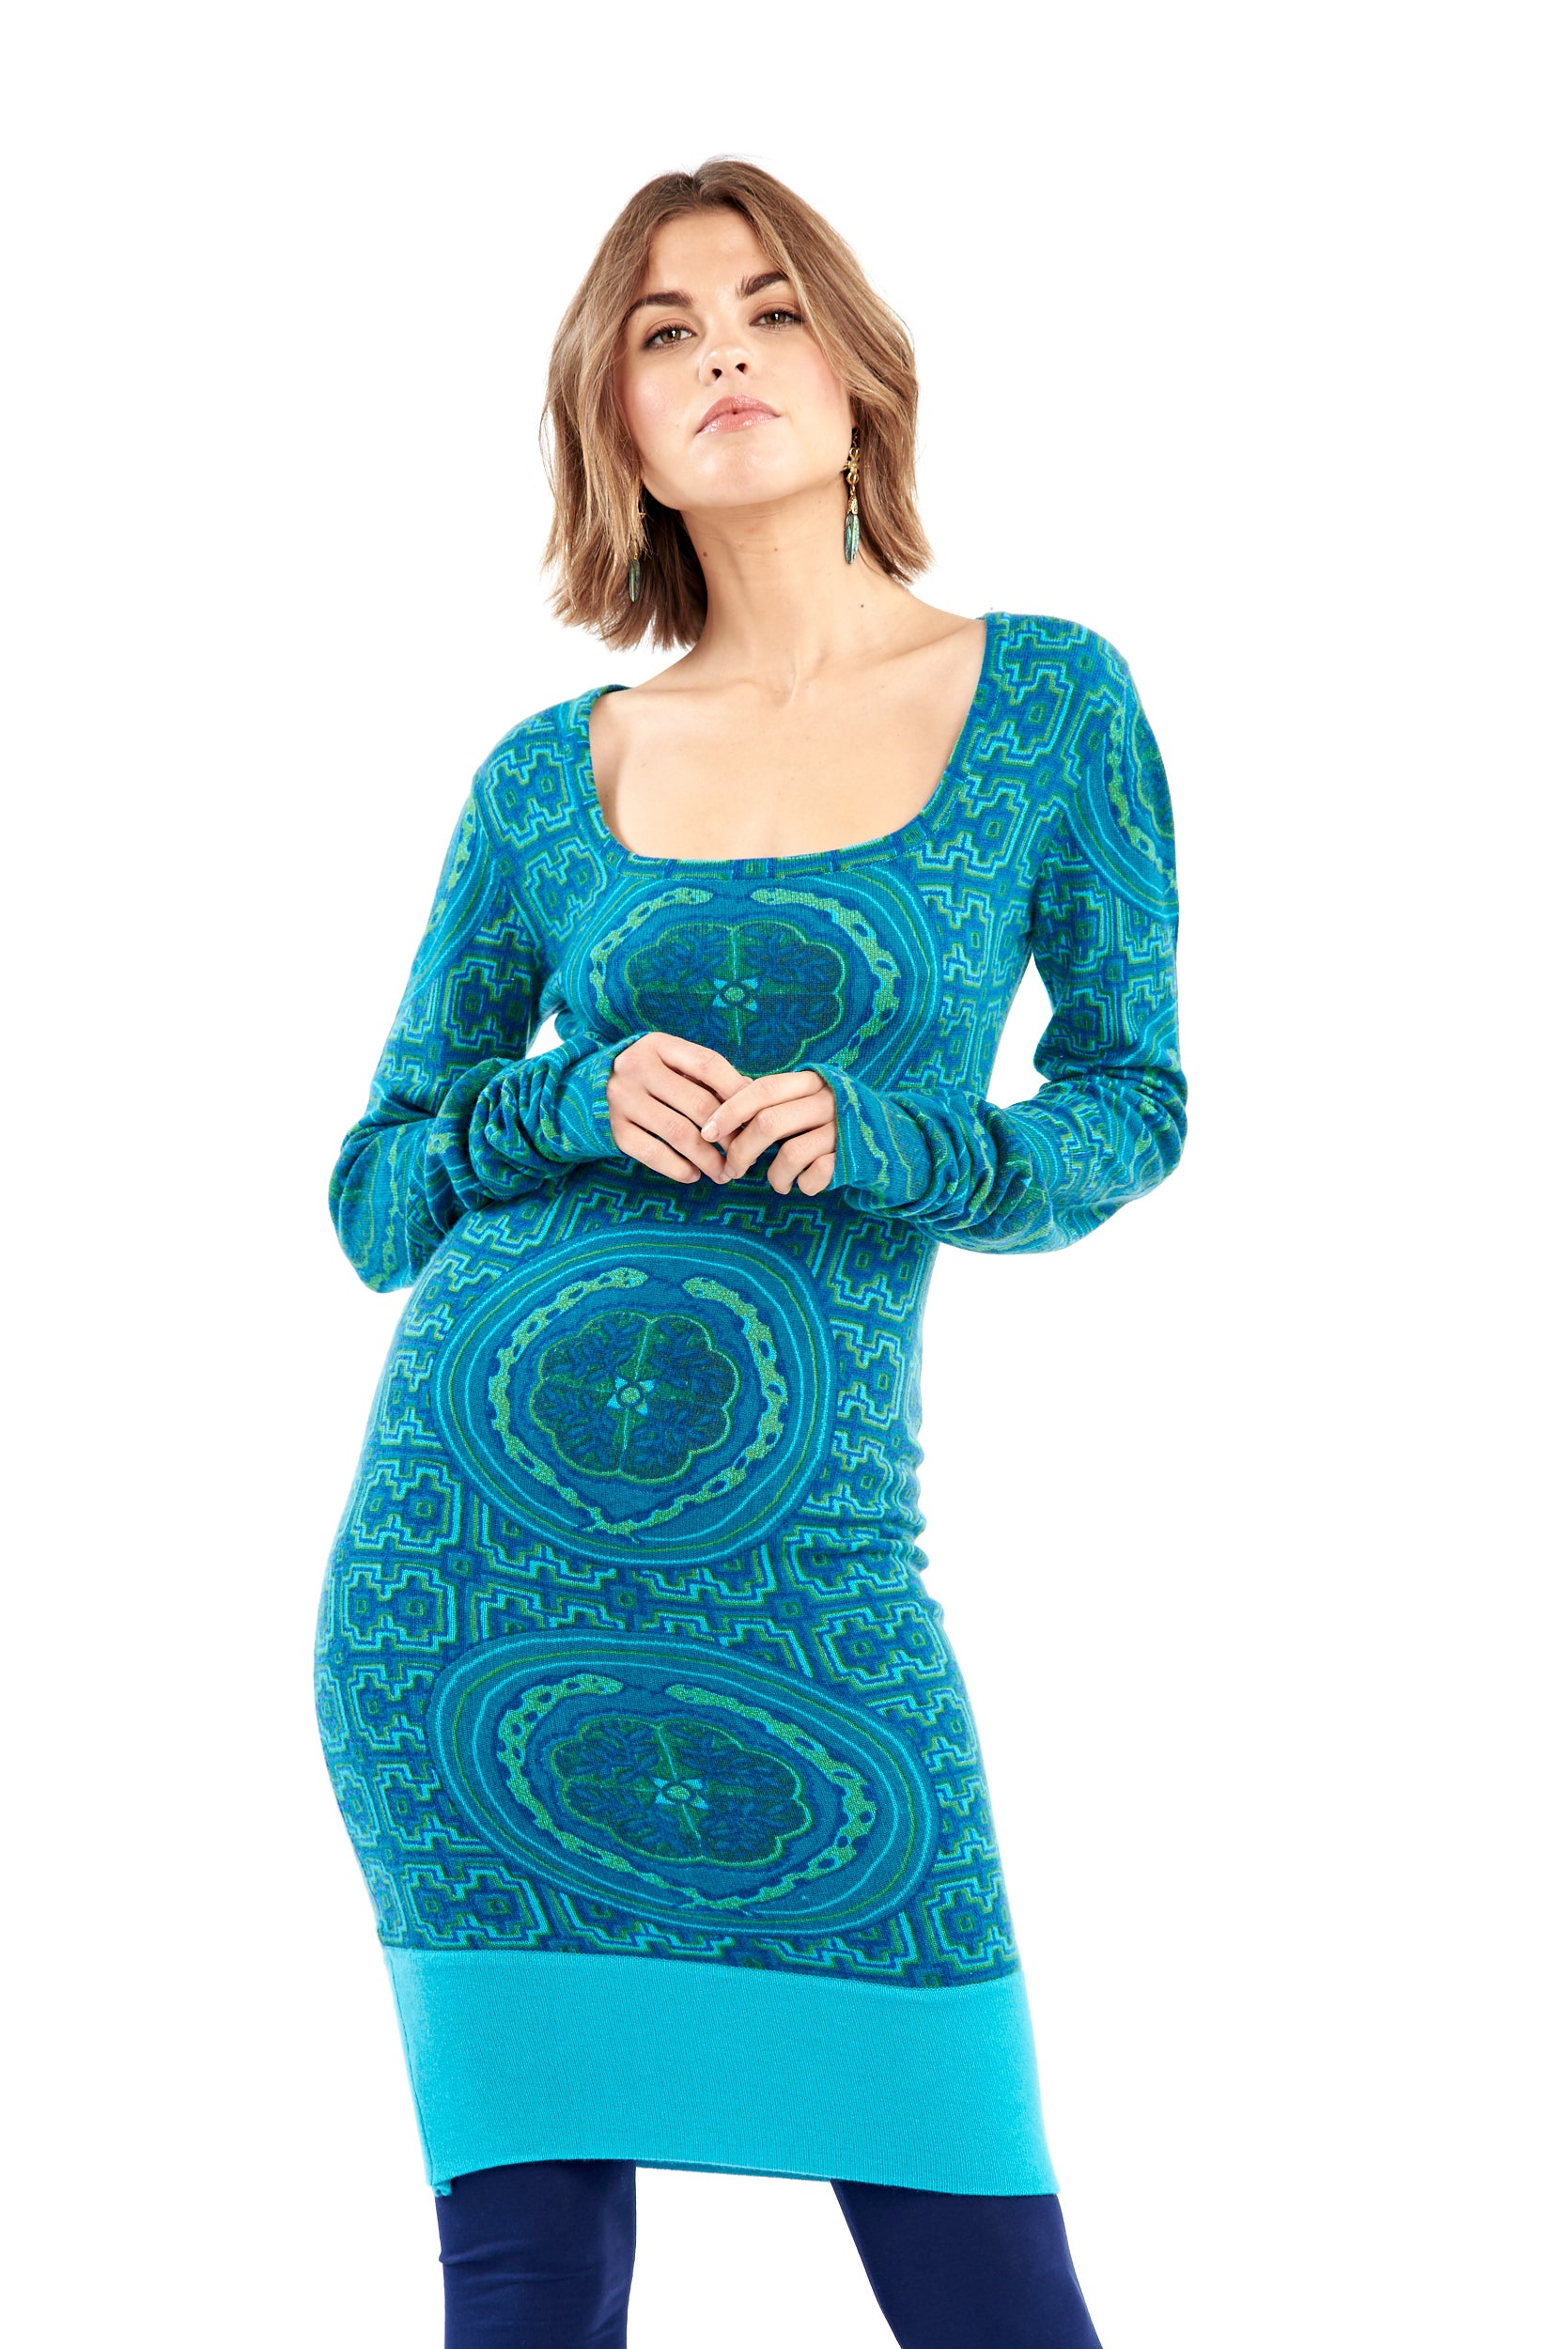 Shipibo Inspired Cashmere Fitted Jumper Dress Blue/Turquoise with Panel